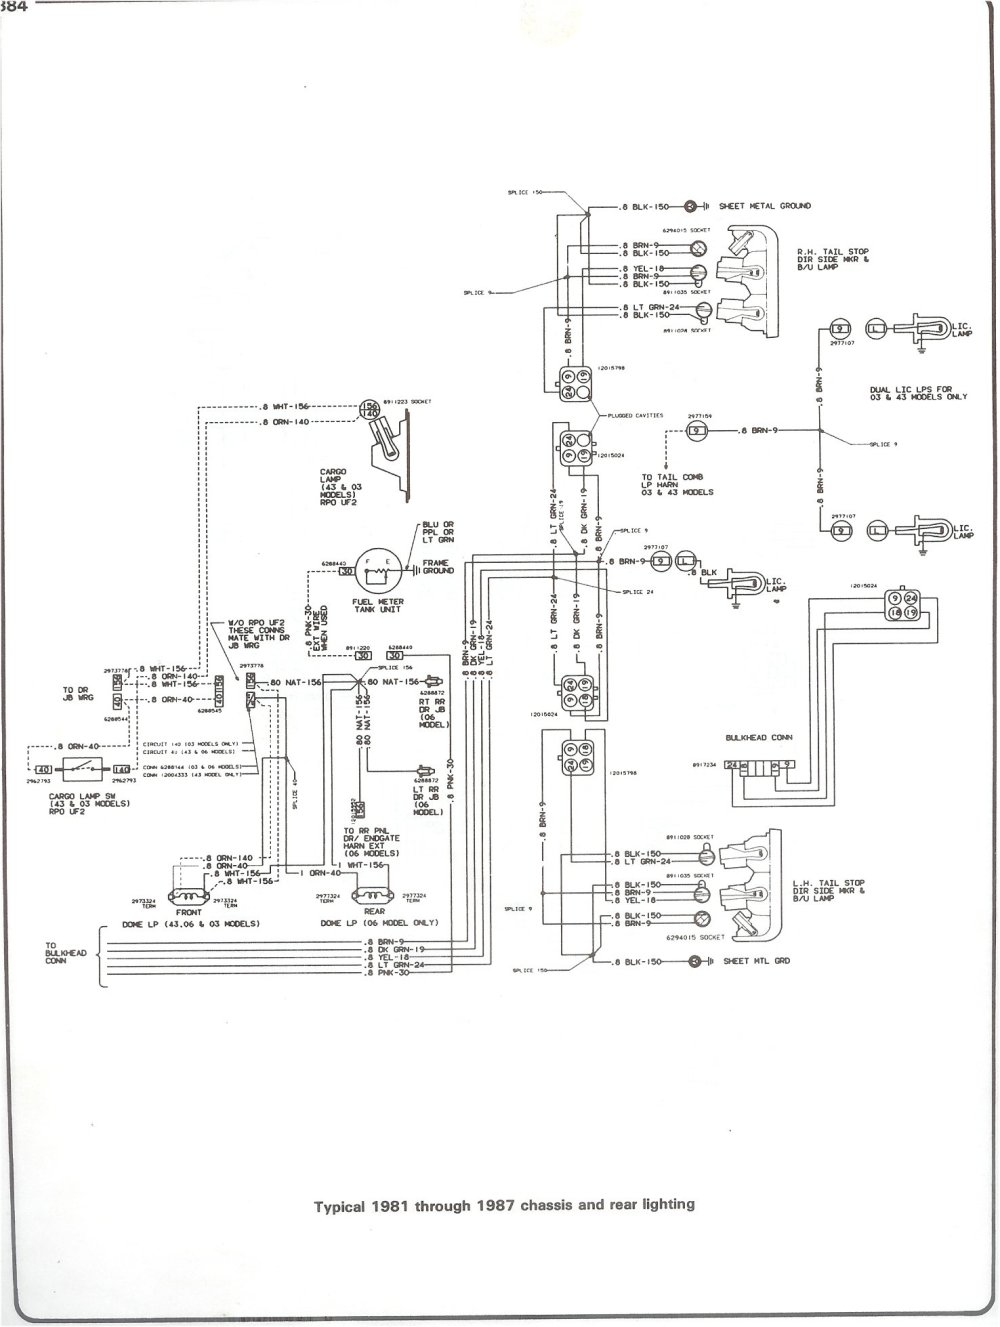 medium resolution of complete 73 87 wiring diagrams 86 suburban stereo wiring diagram 81 87 chassis and rear lighting